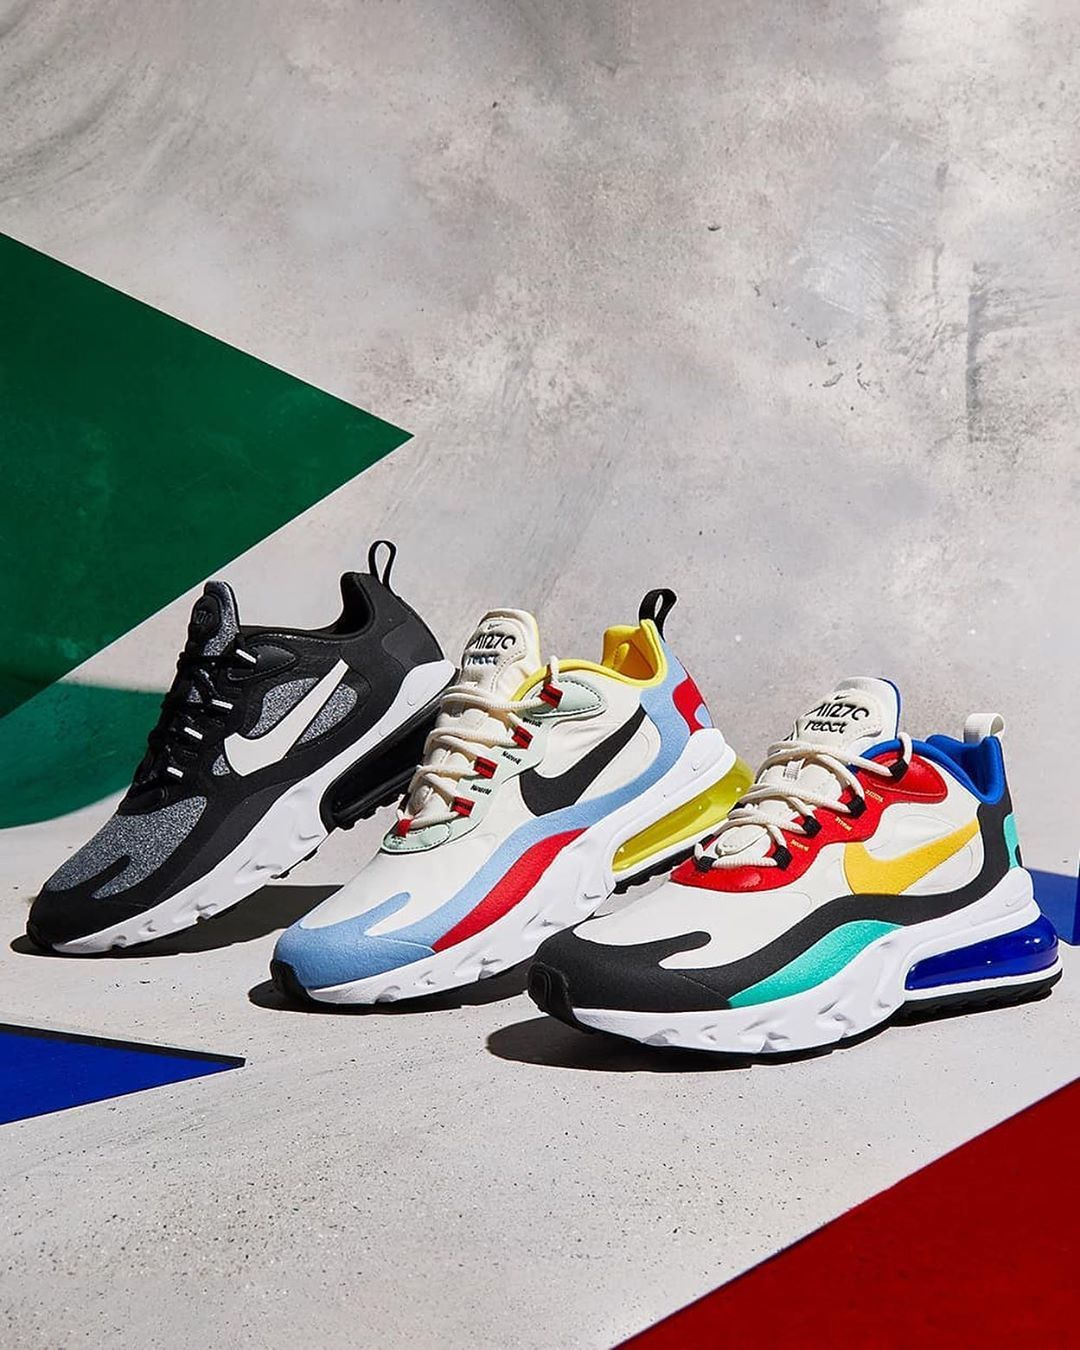 desinfectante Velas variable  RAFFLES are now open for the NIKE AIR MAX 270 REACT ahead of the JULY 3  drop... ...-#* #Nike #nikeair #nikeairmax #nikeairmax270 … | Nike air max,  Nike, Air max 270